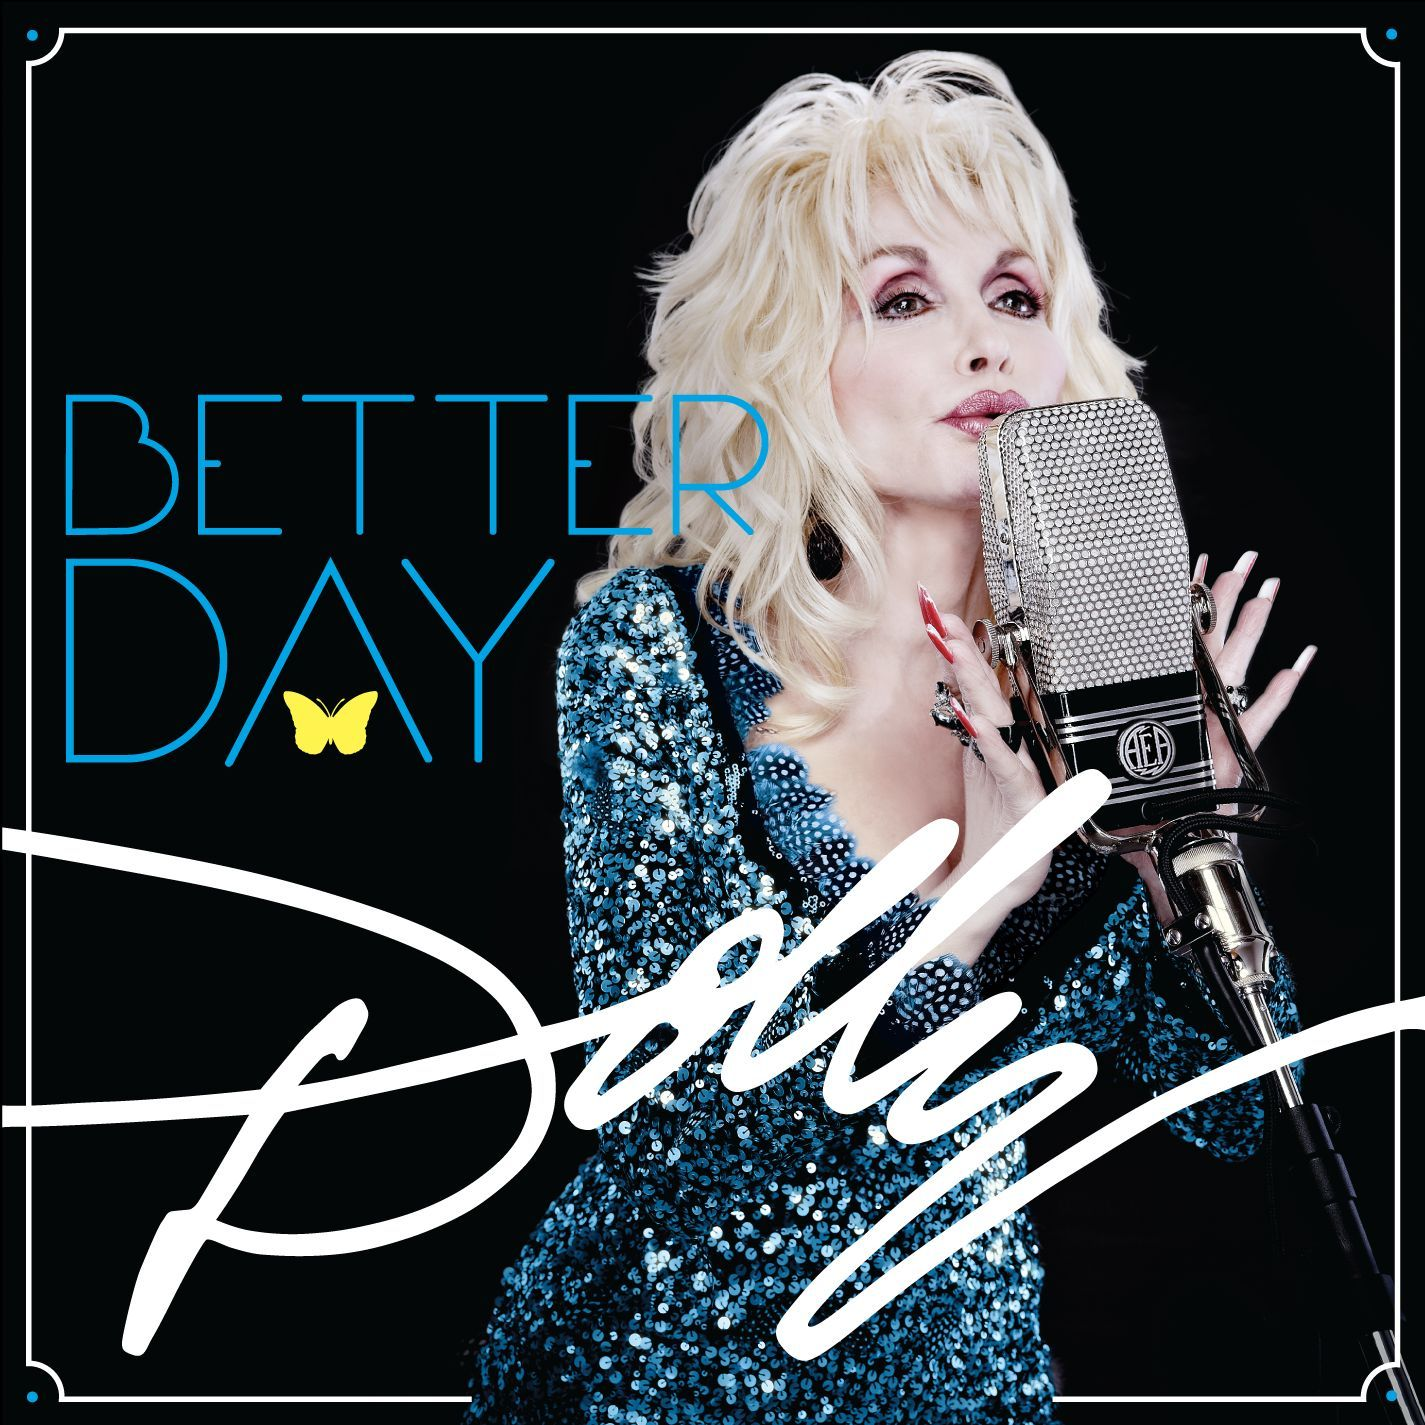 Dolly Parton - Better Day 2011